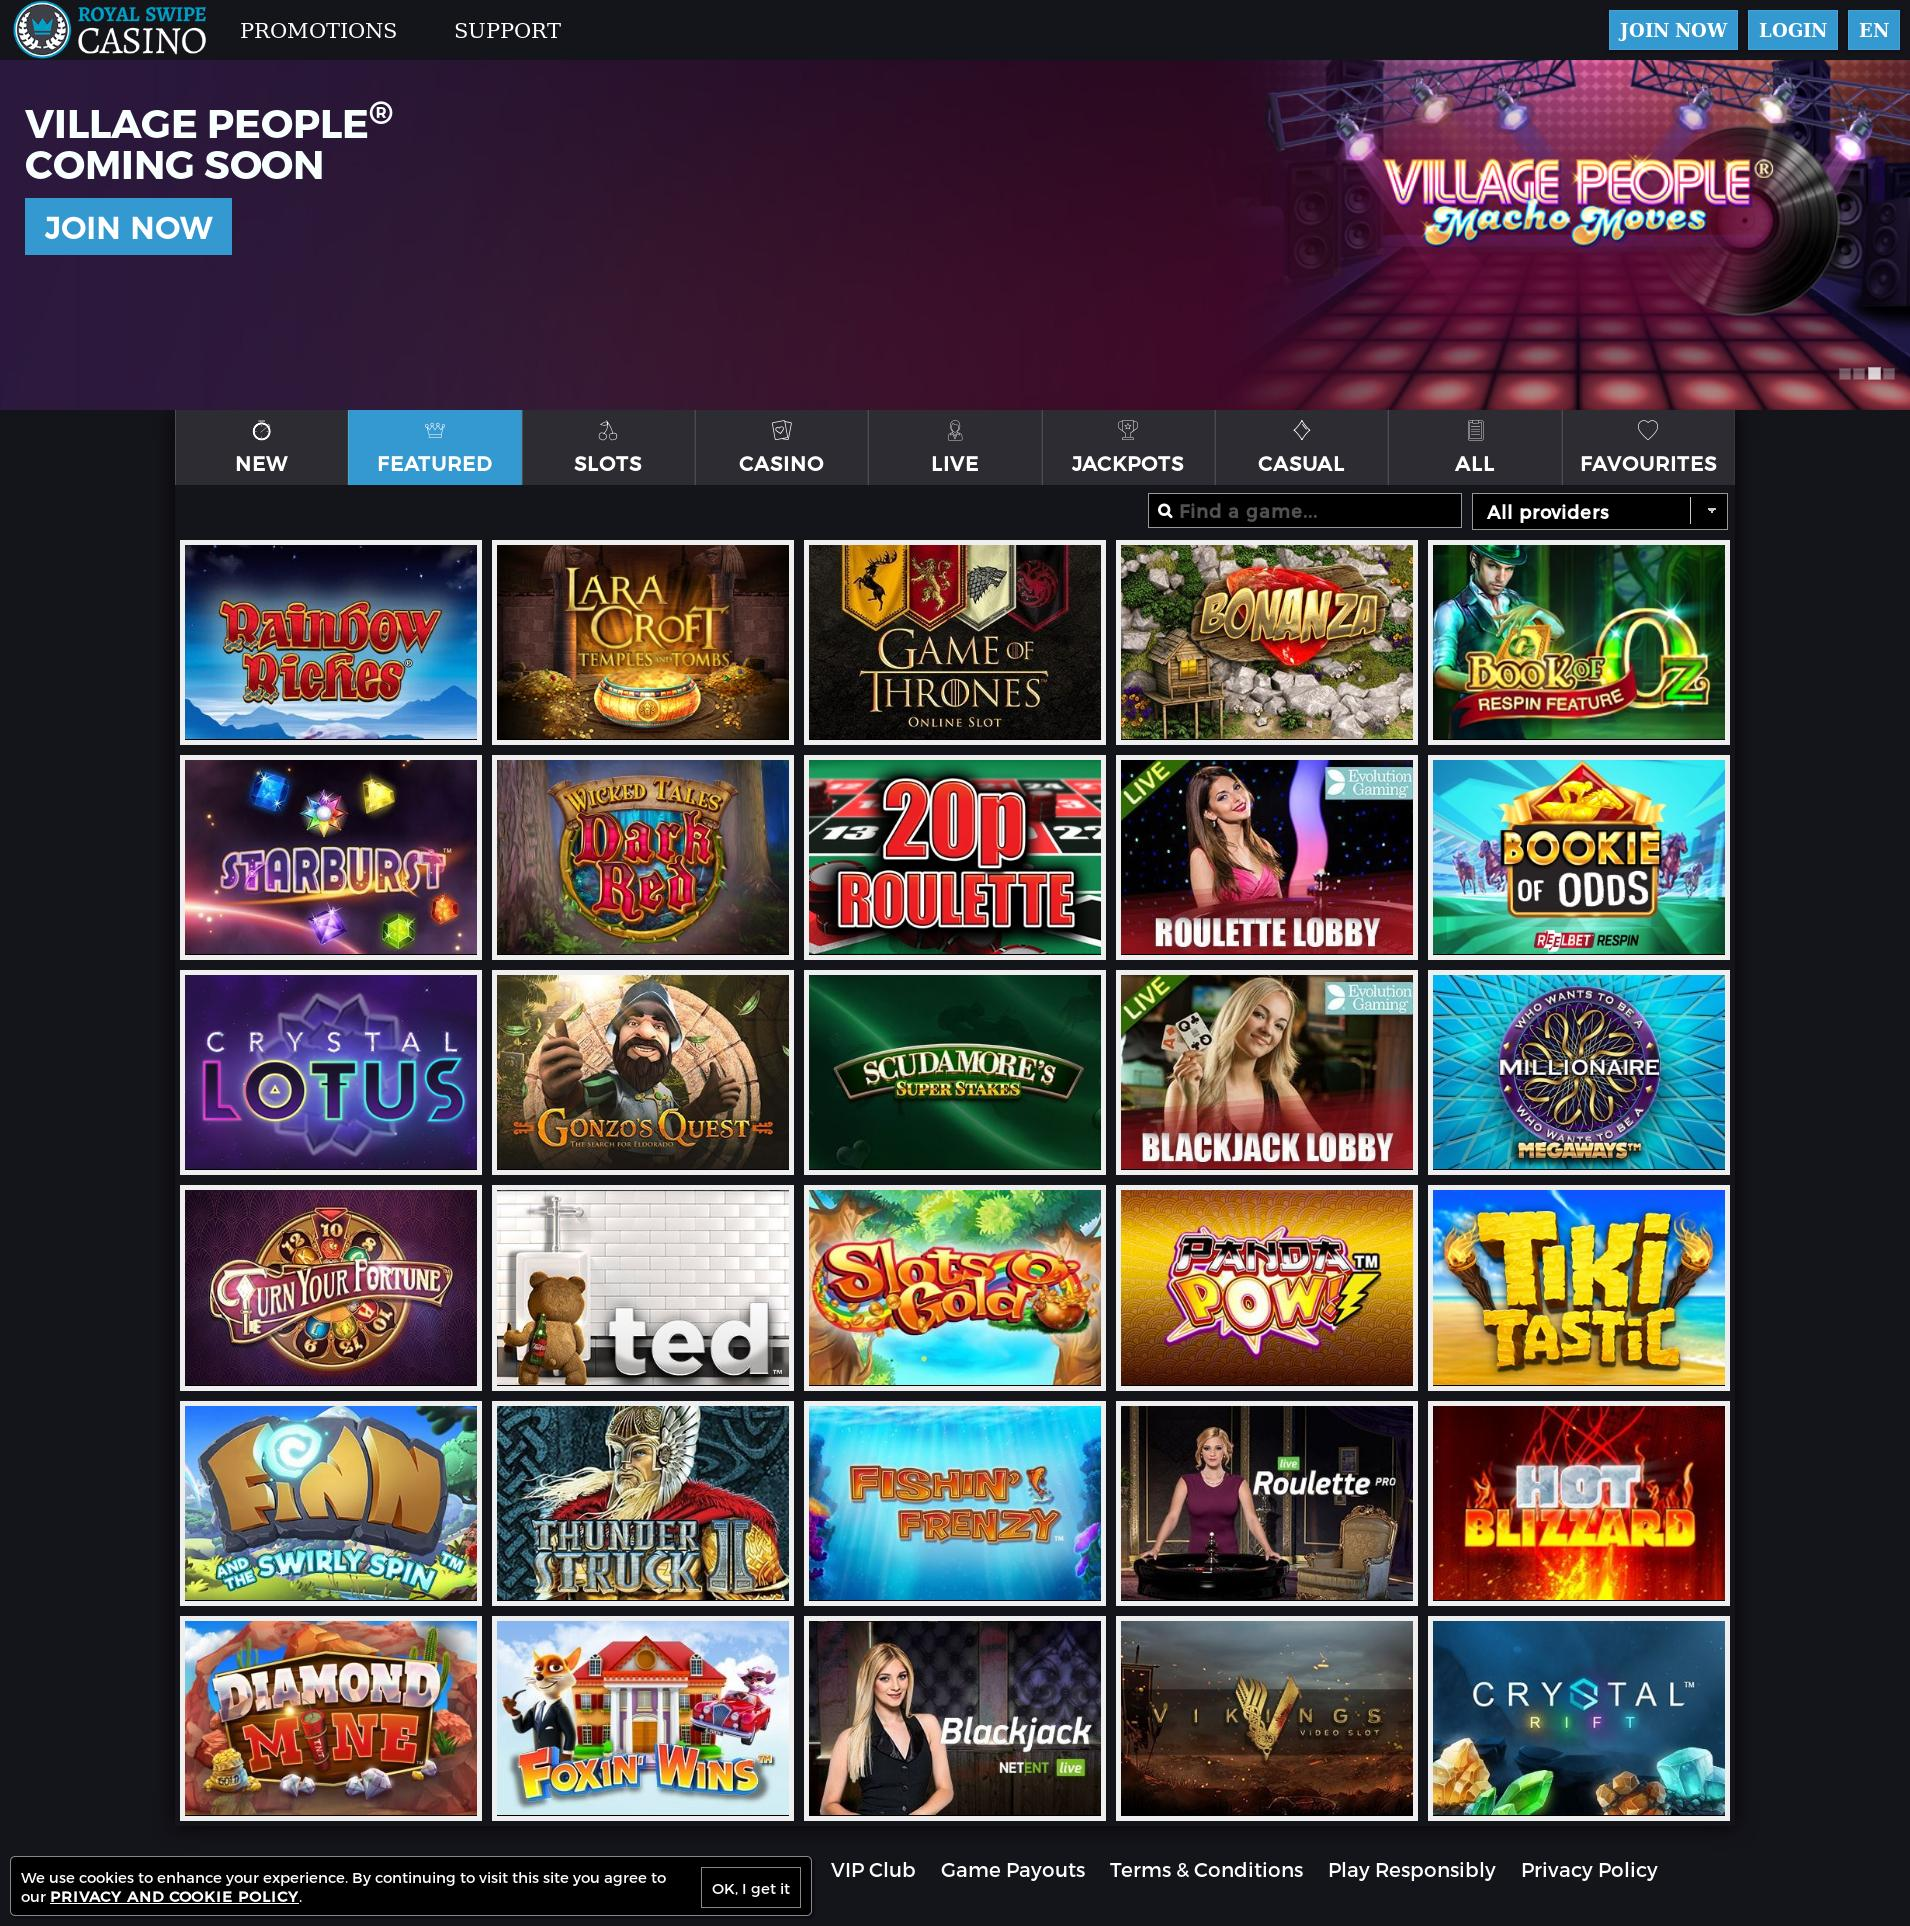 Casino screen Lobby 2019-06-14 for United Kingdom